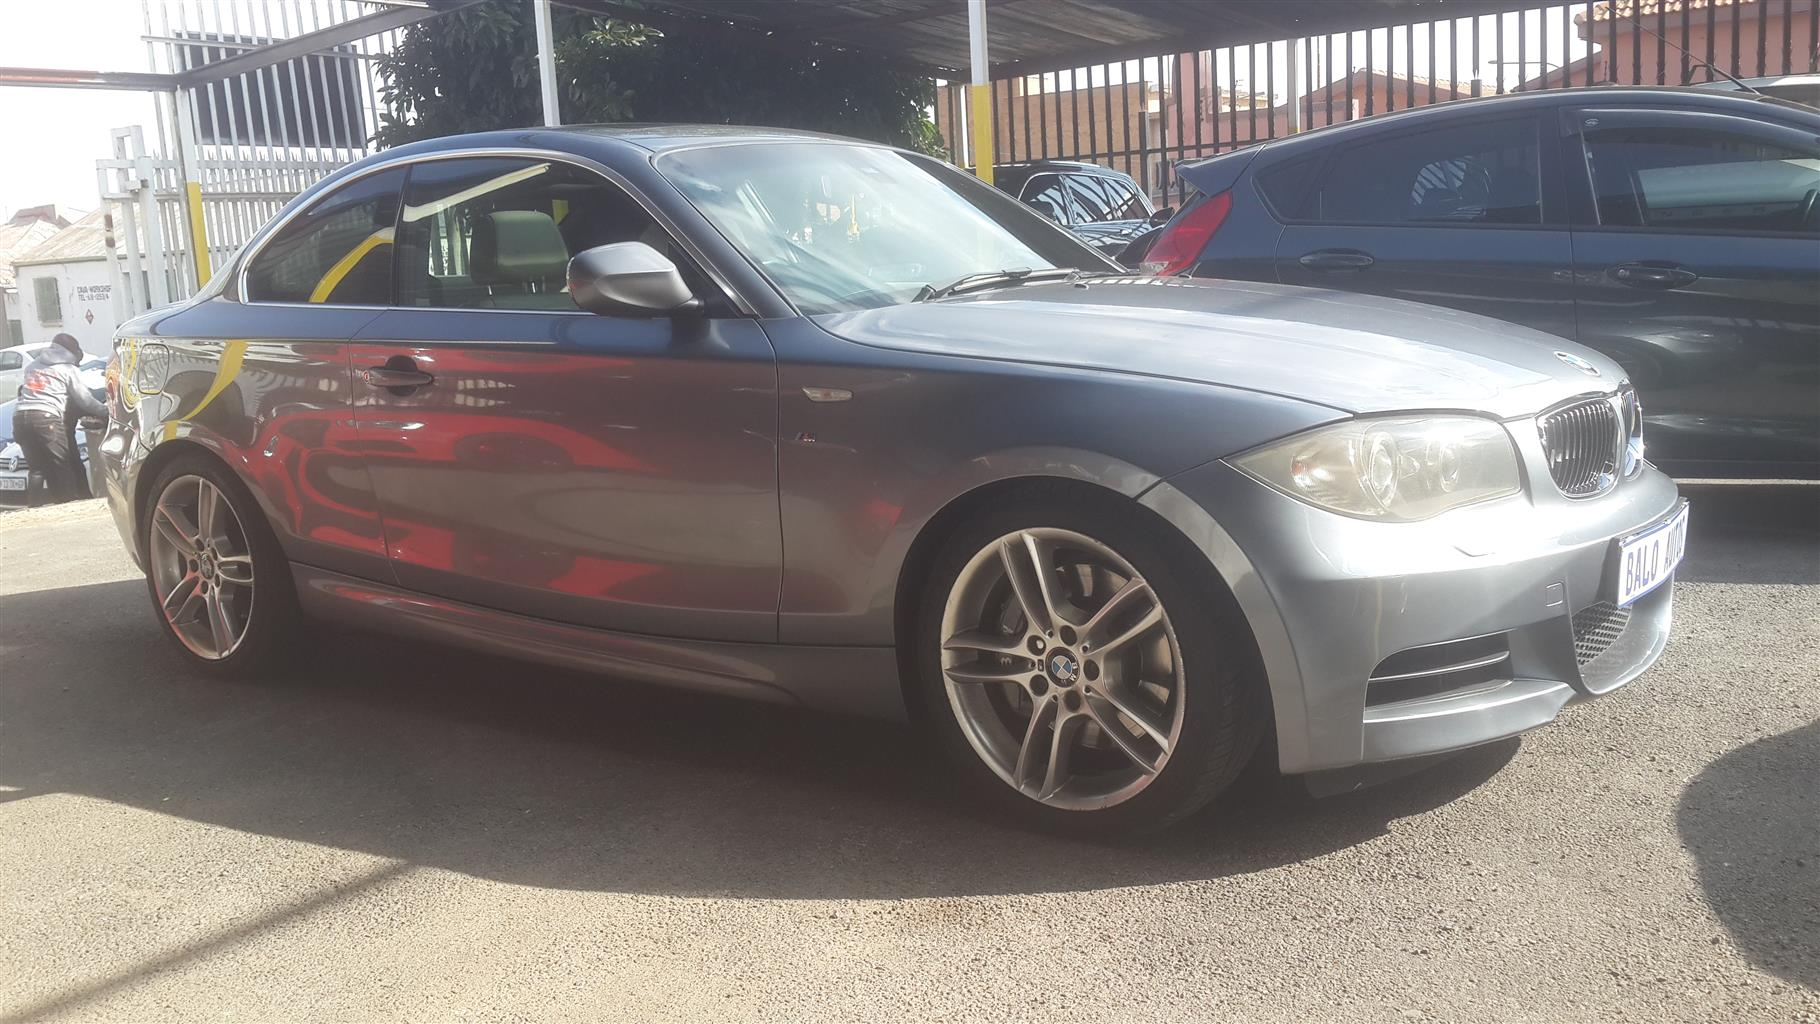 2010 BMW 1 Series 135i coupe auto | Junk Mail